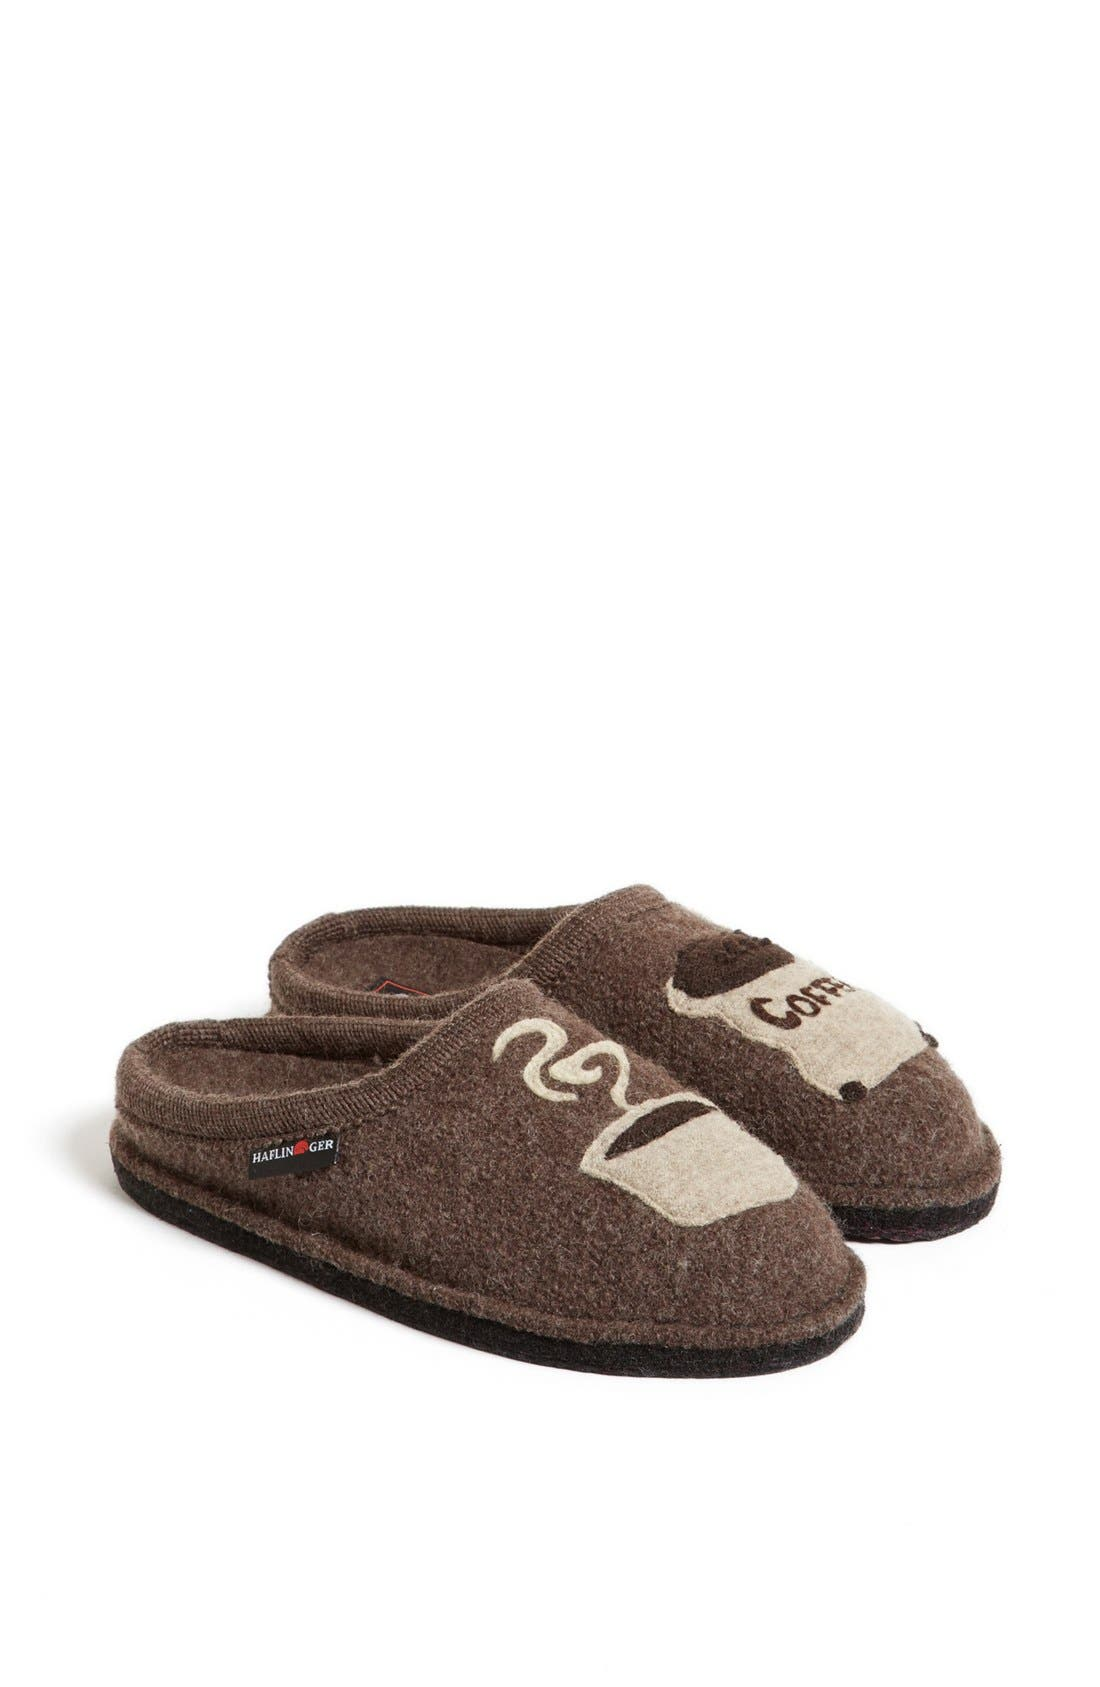 HAFLINGER 'Coffee' Slipper